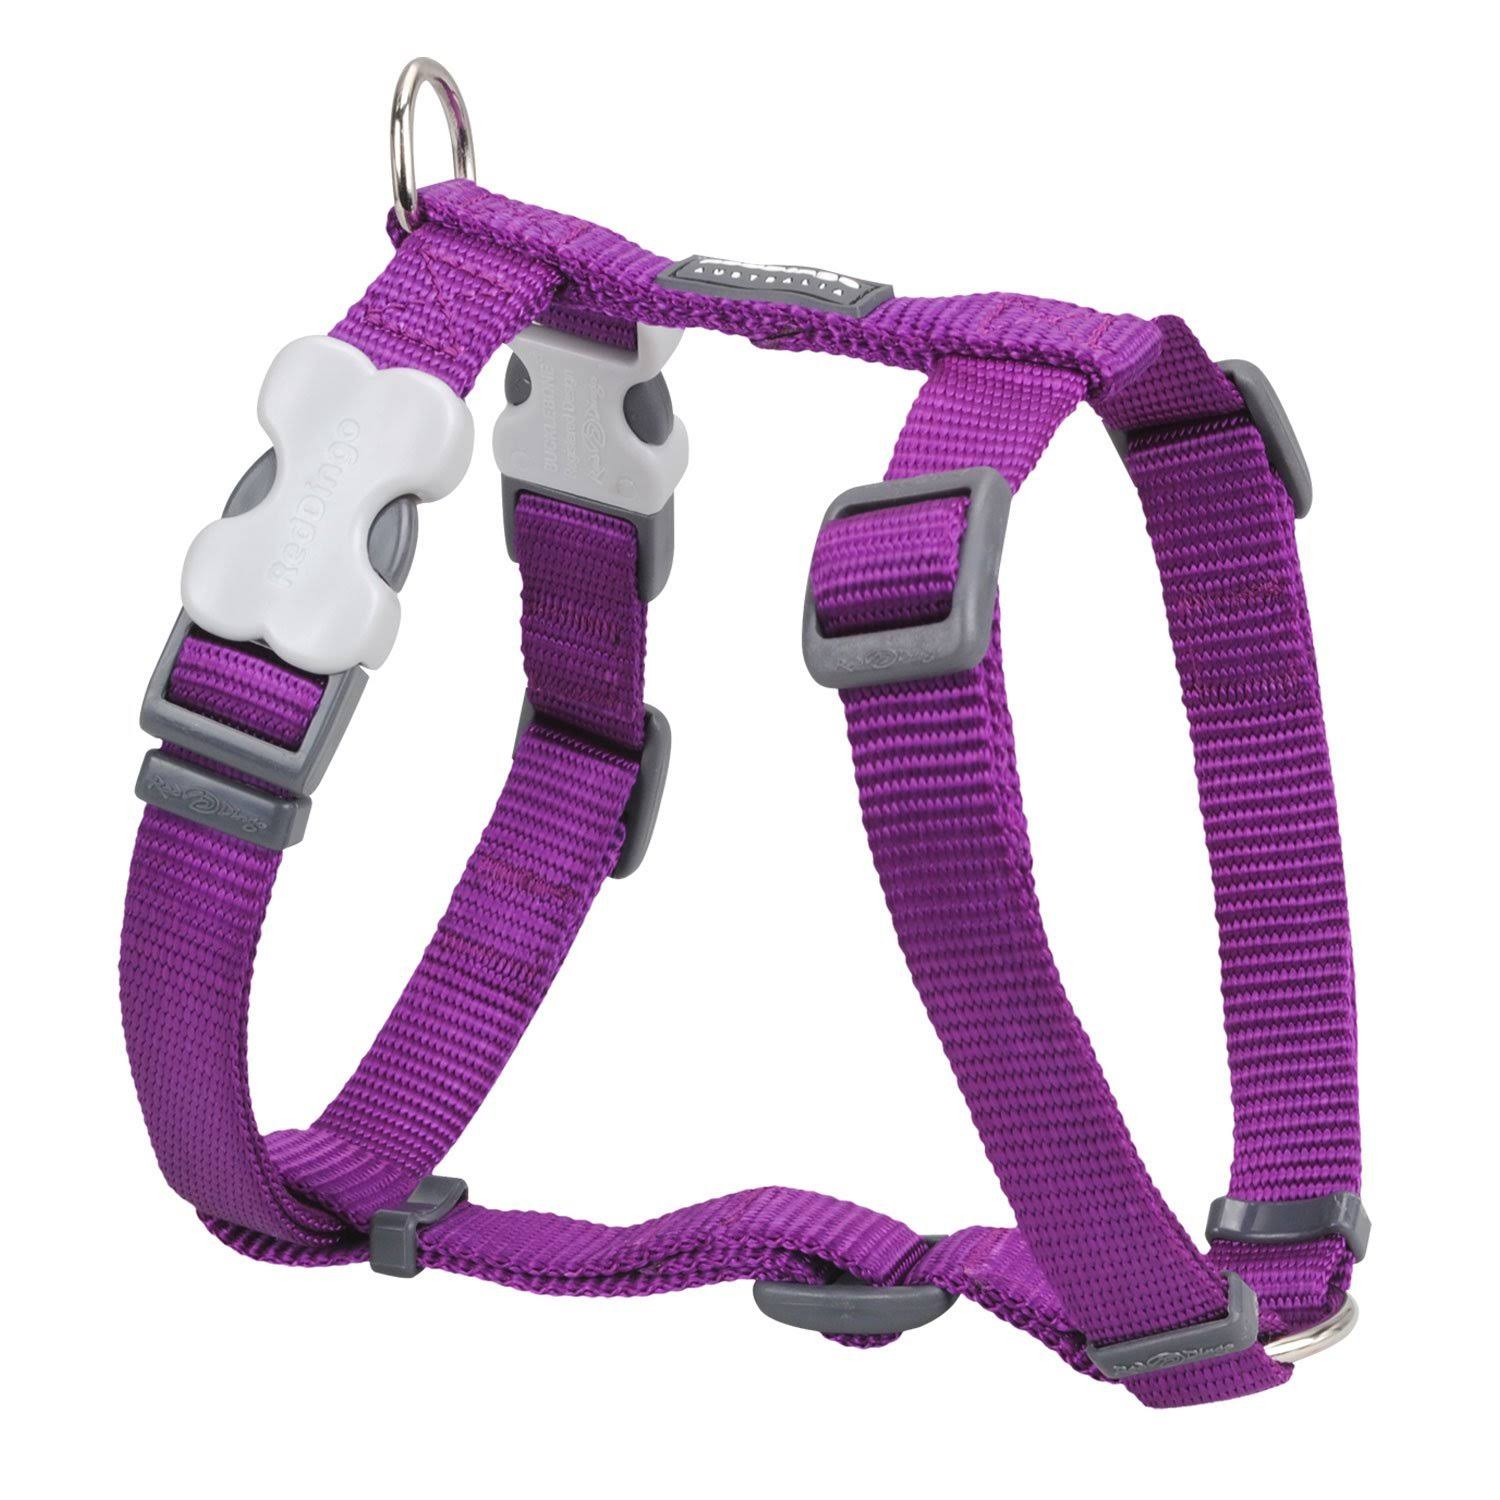 Red Dingo Classic Dog Harness - Large, Purple